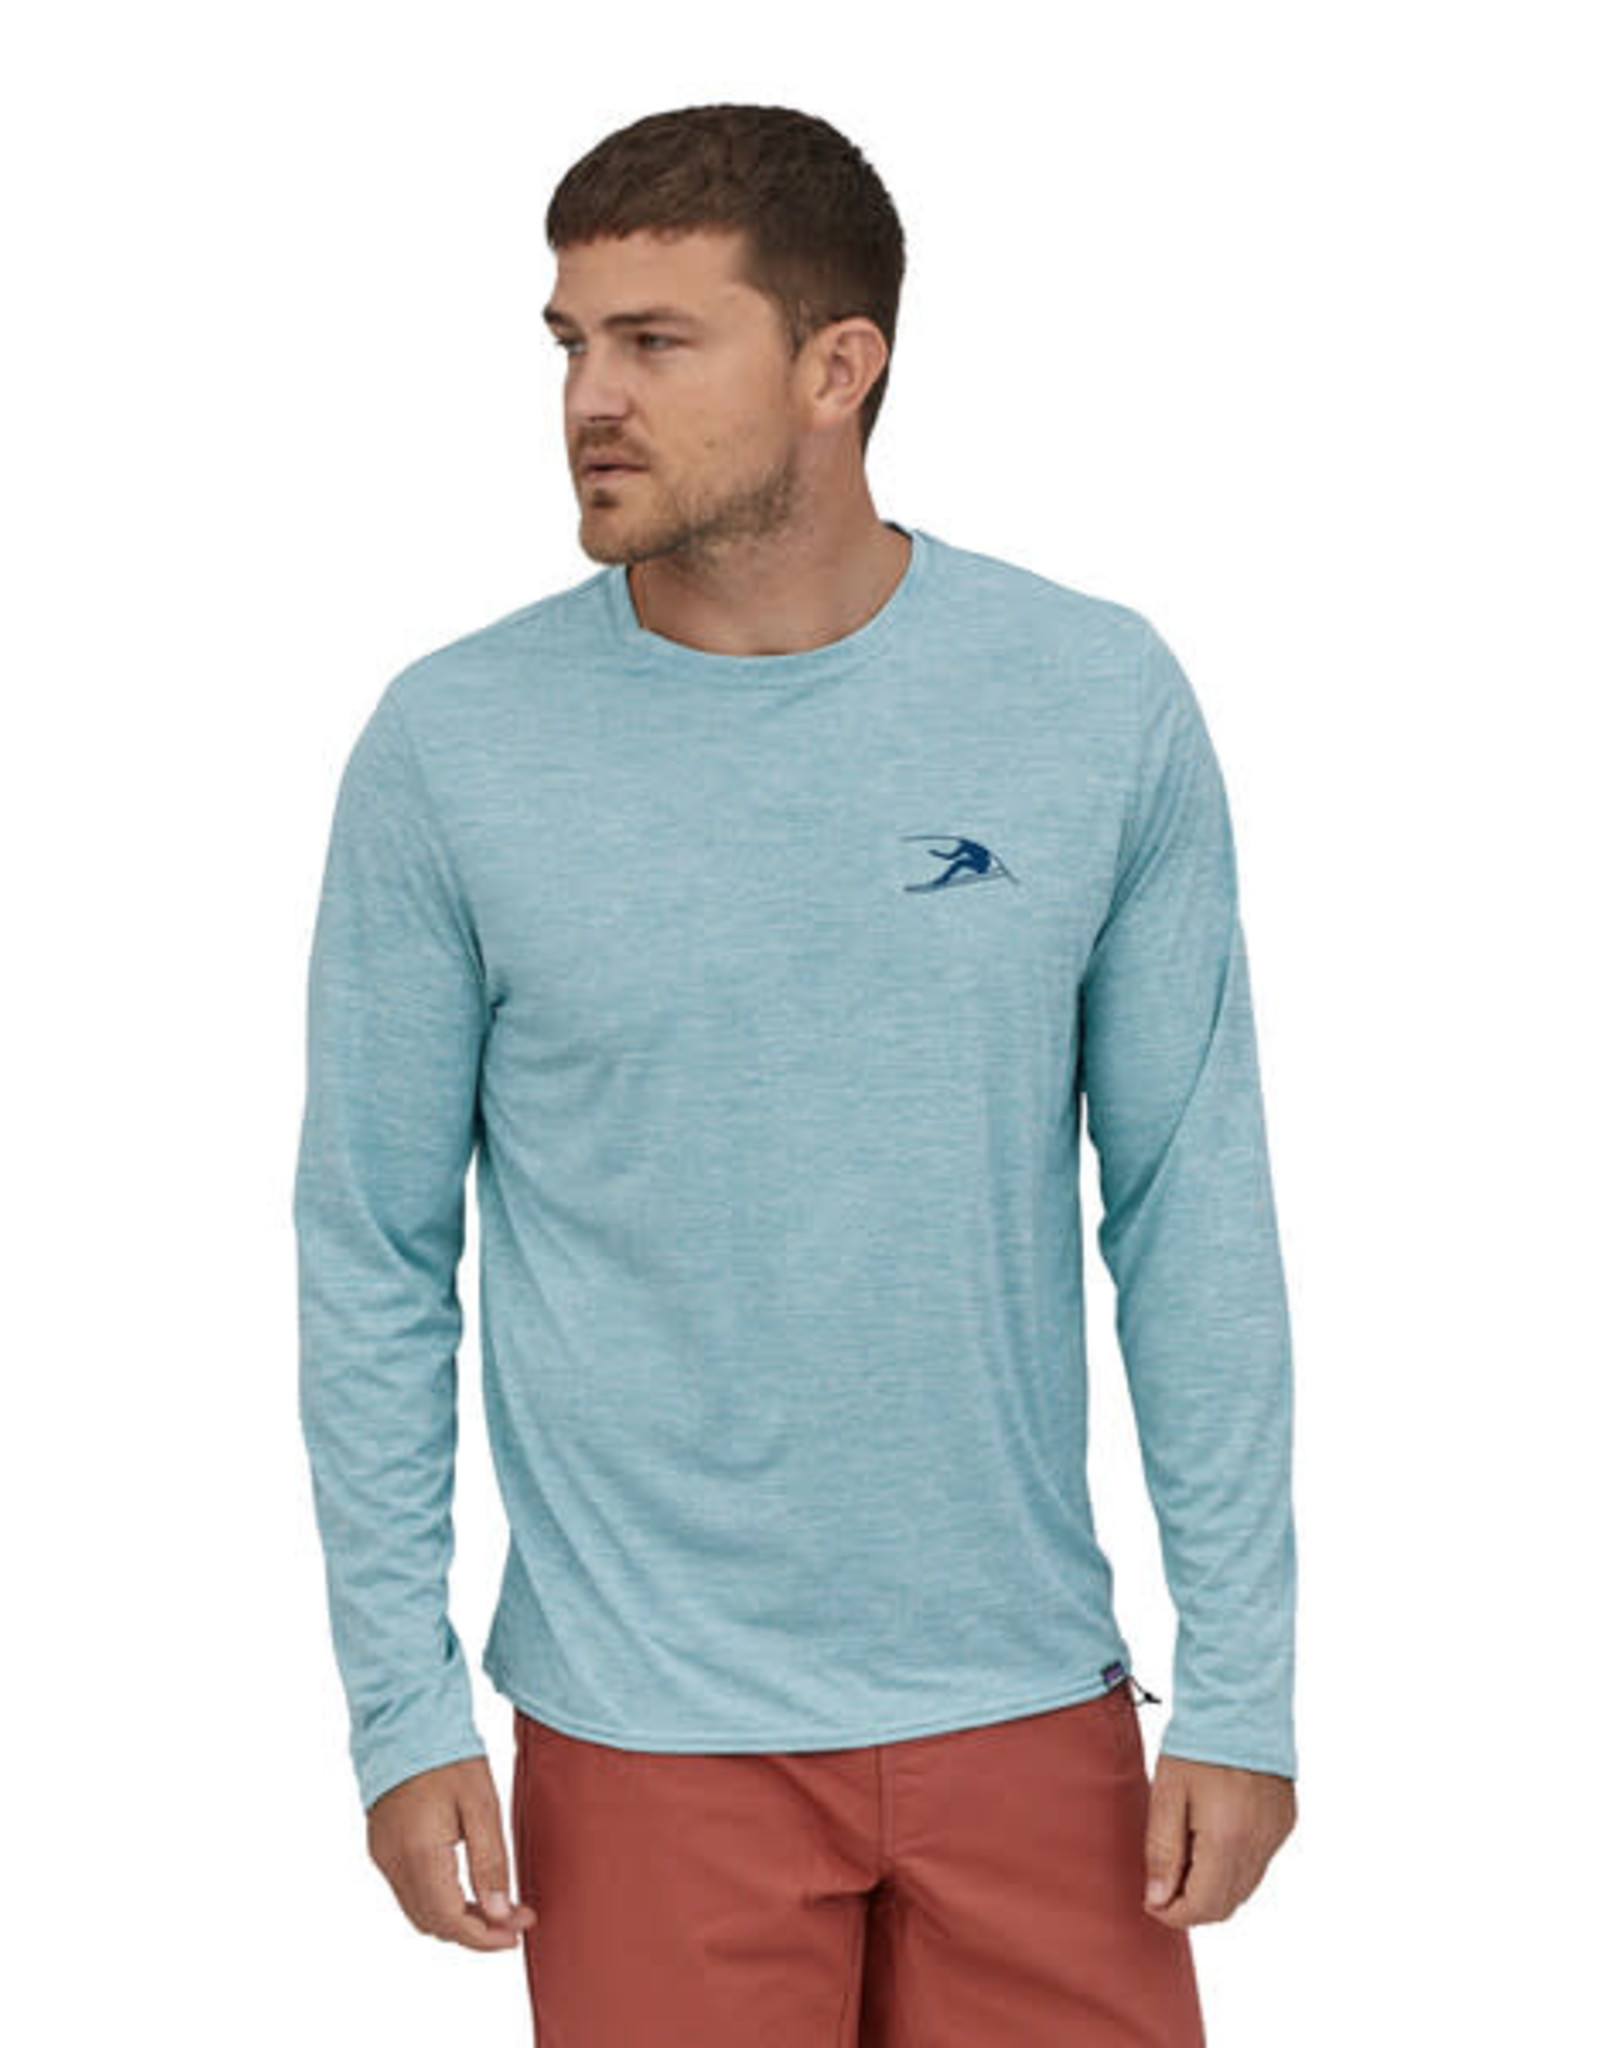 patagonia 45190 M's L/S cap cool daily graphic shirt